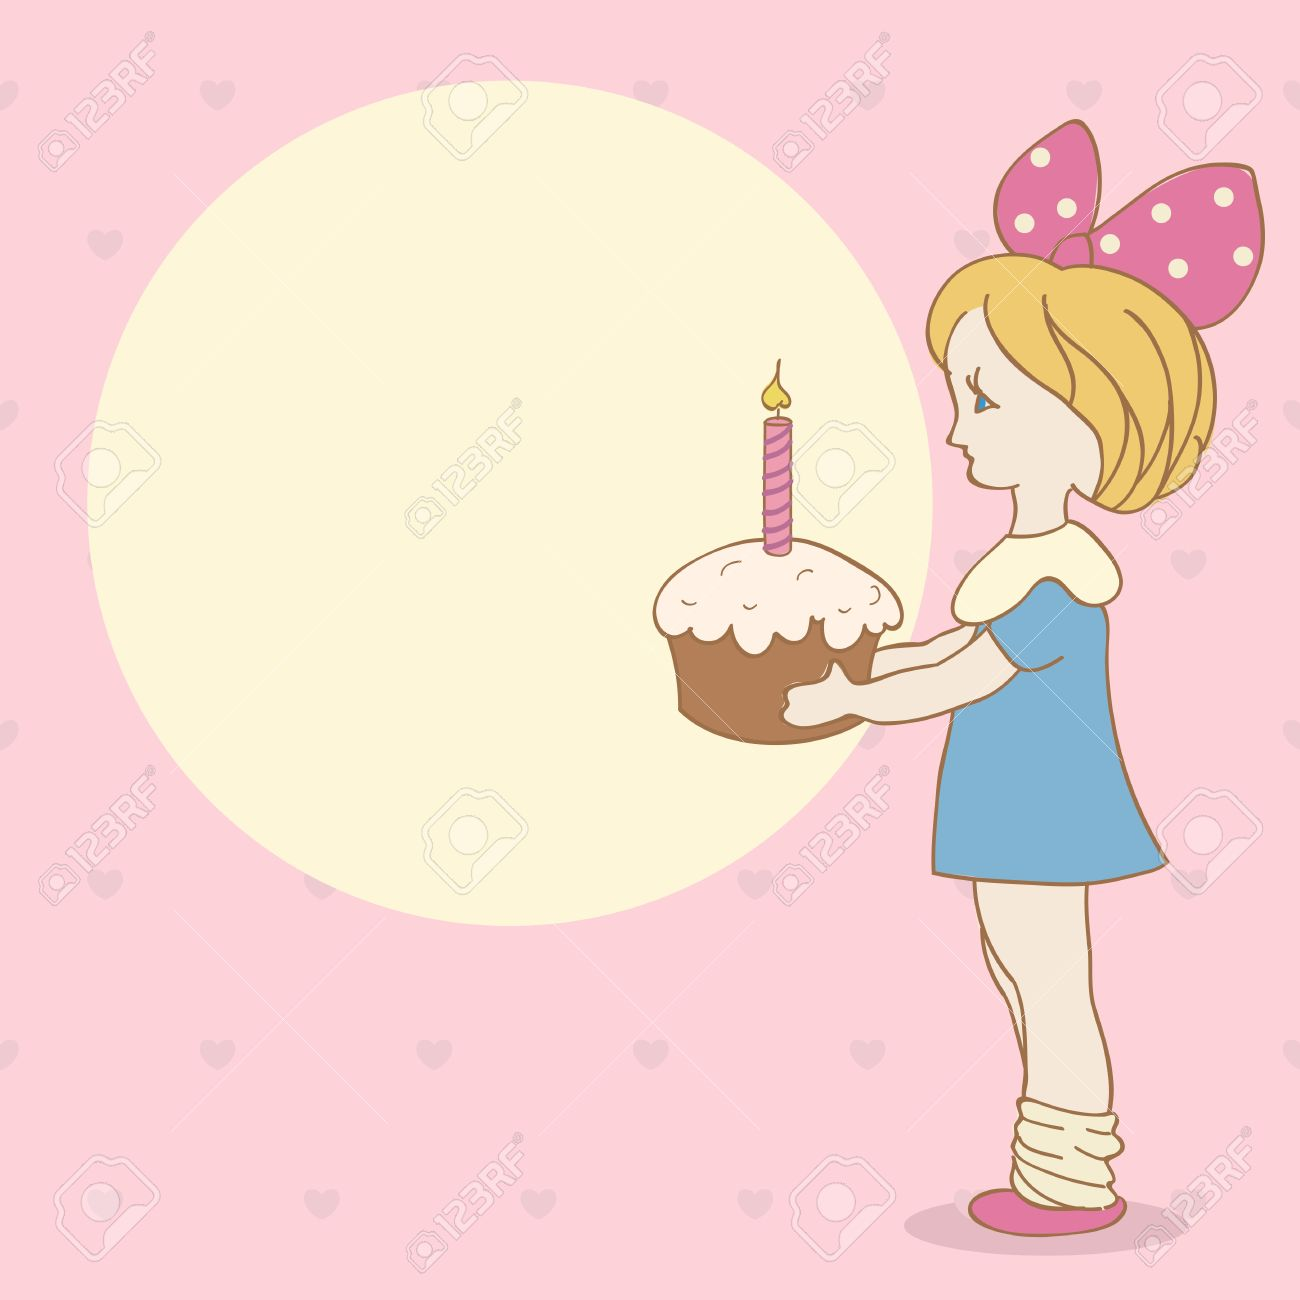 Invitation Card With Girl And Cake Birthday Background Royalty Free